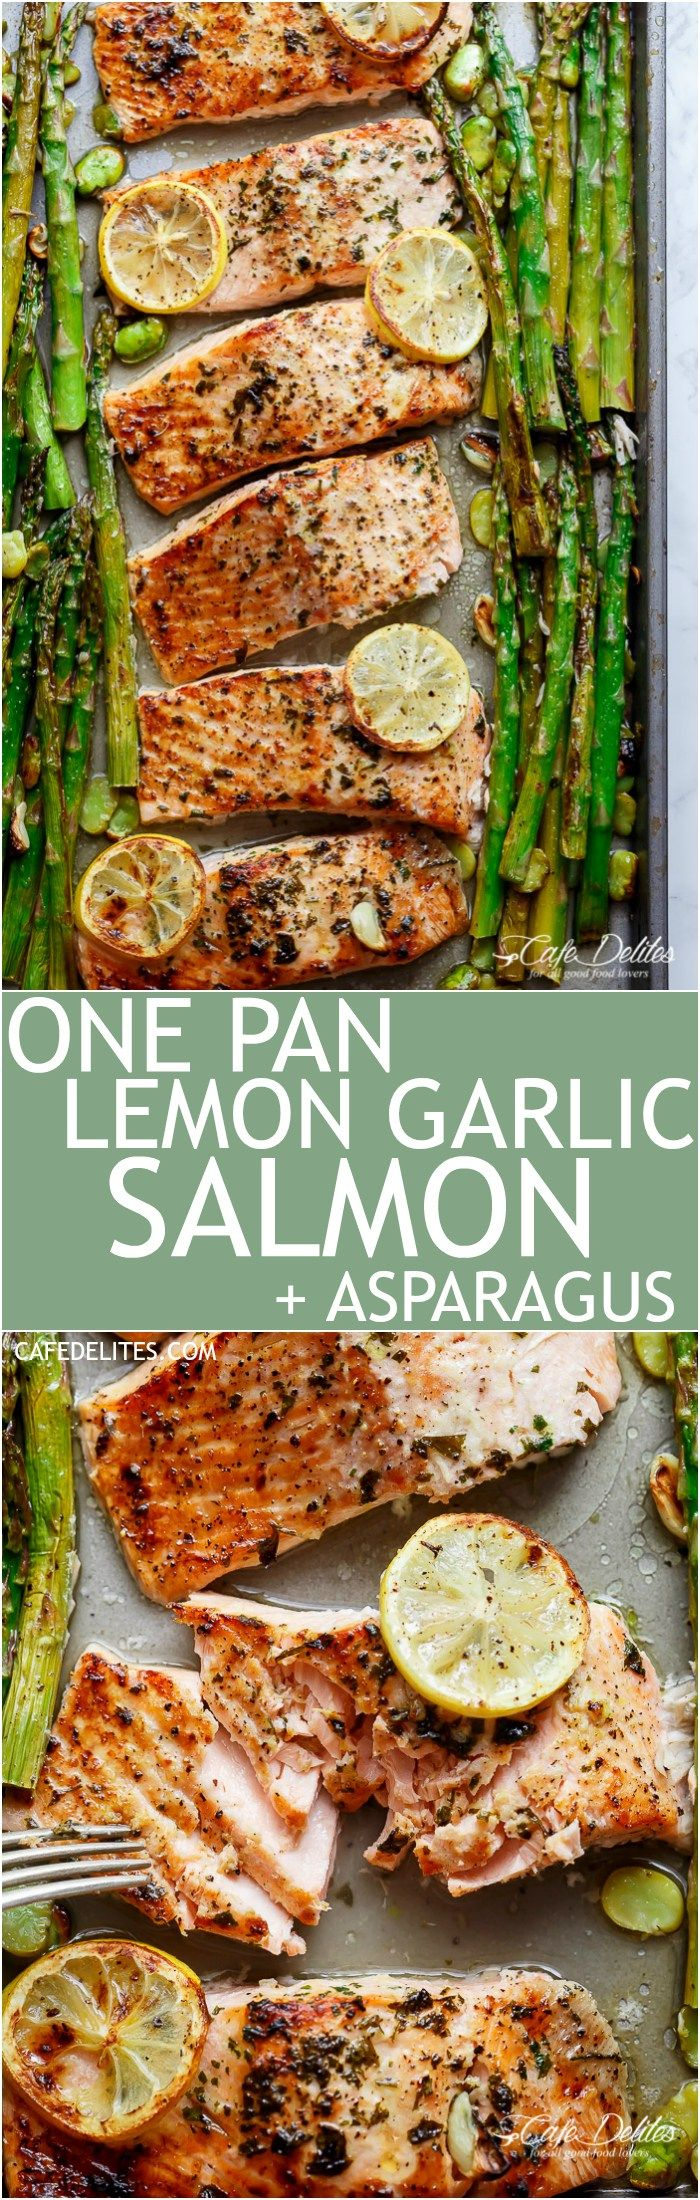 Lemon, garlic and parsley are infused in One Pan Lemon Garlic Baked Salmon + Asparagus ready in only 10 minutes without any marinading! | http://cafedelites.stfi.re